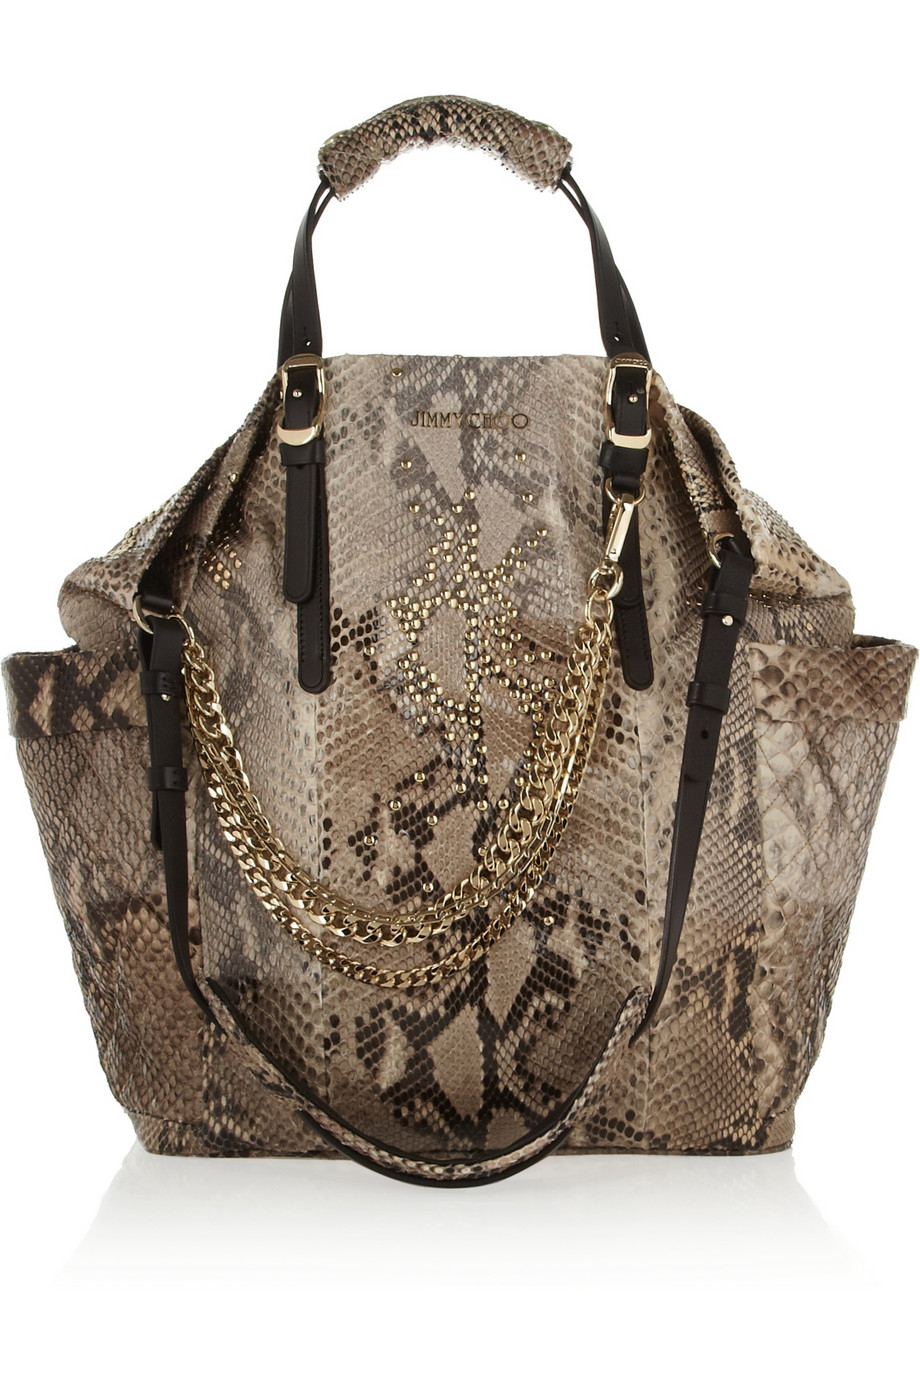 Jimmy Choo Blare Leathertrimmed Studded Python Tote In